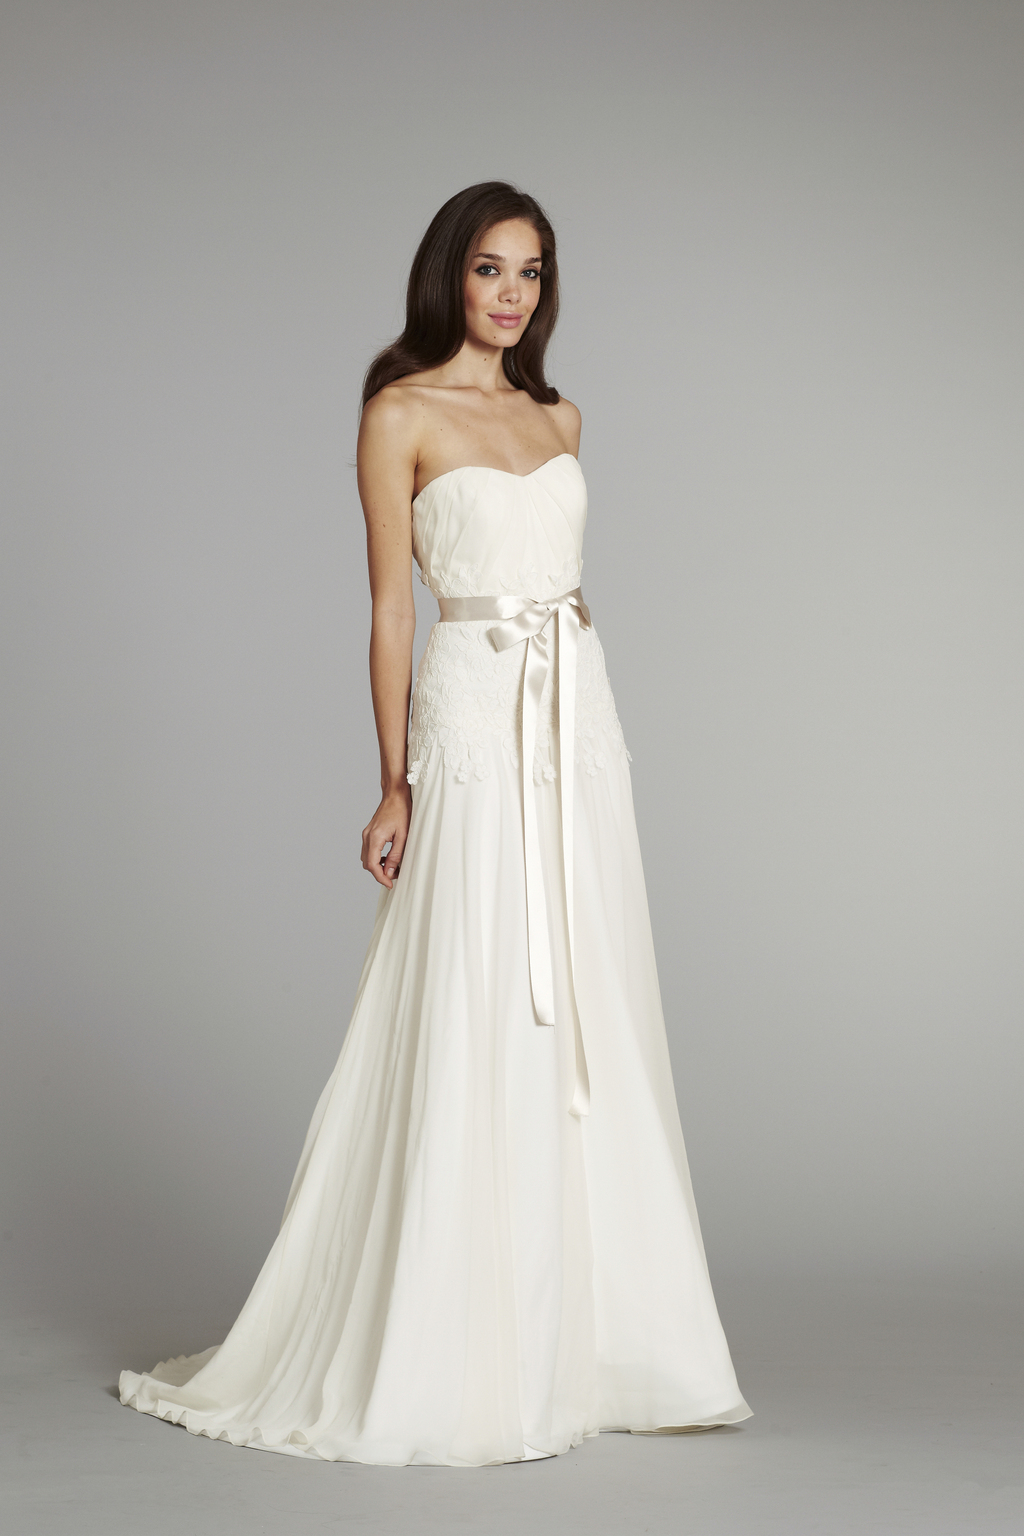 New-bridal-gowns-fall-2012-wedding-dress-hayley-paige-for-jlm-couture-prima.full